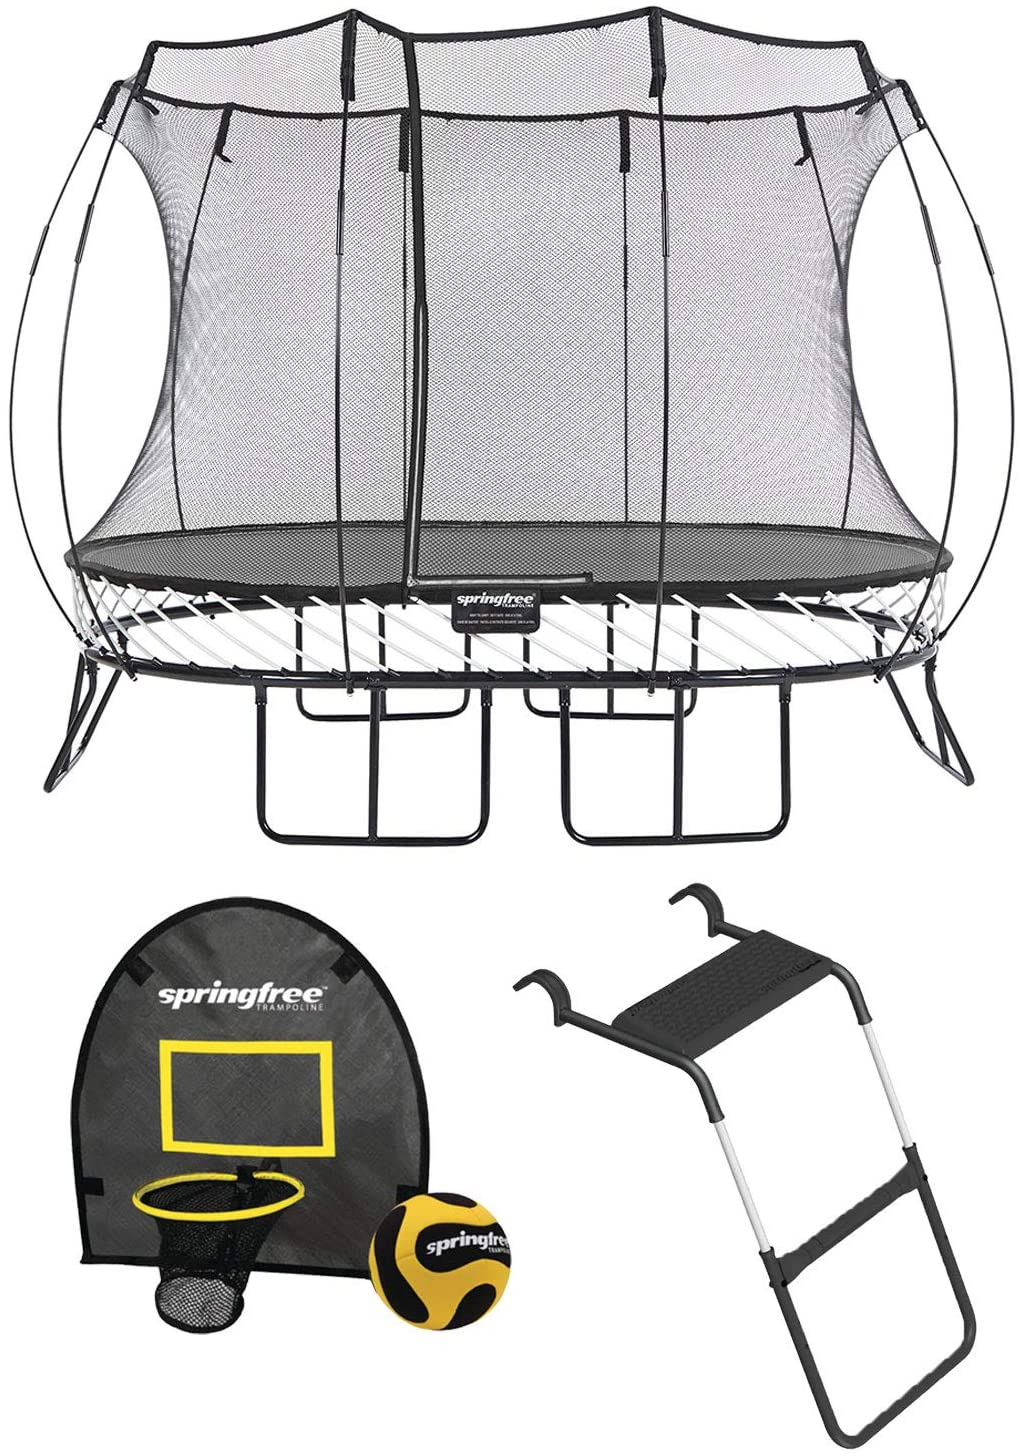 Springfree Trampoline Naked Trampolines